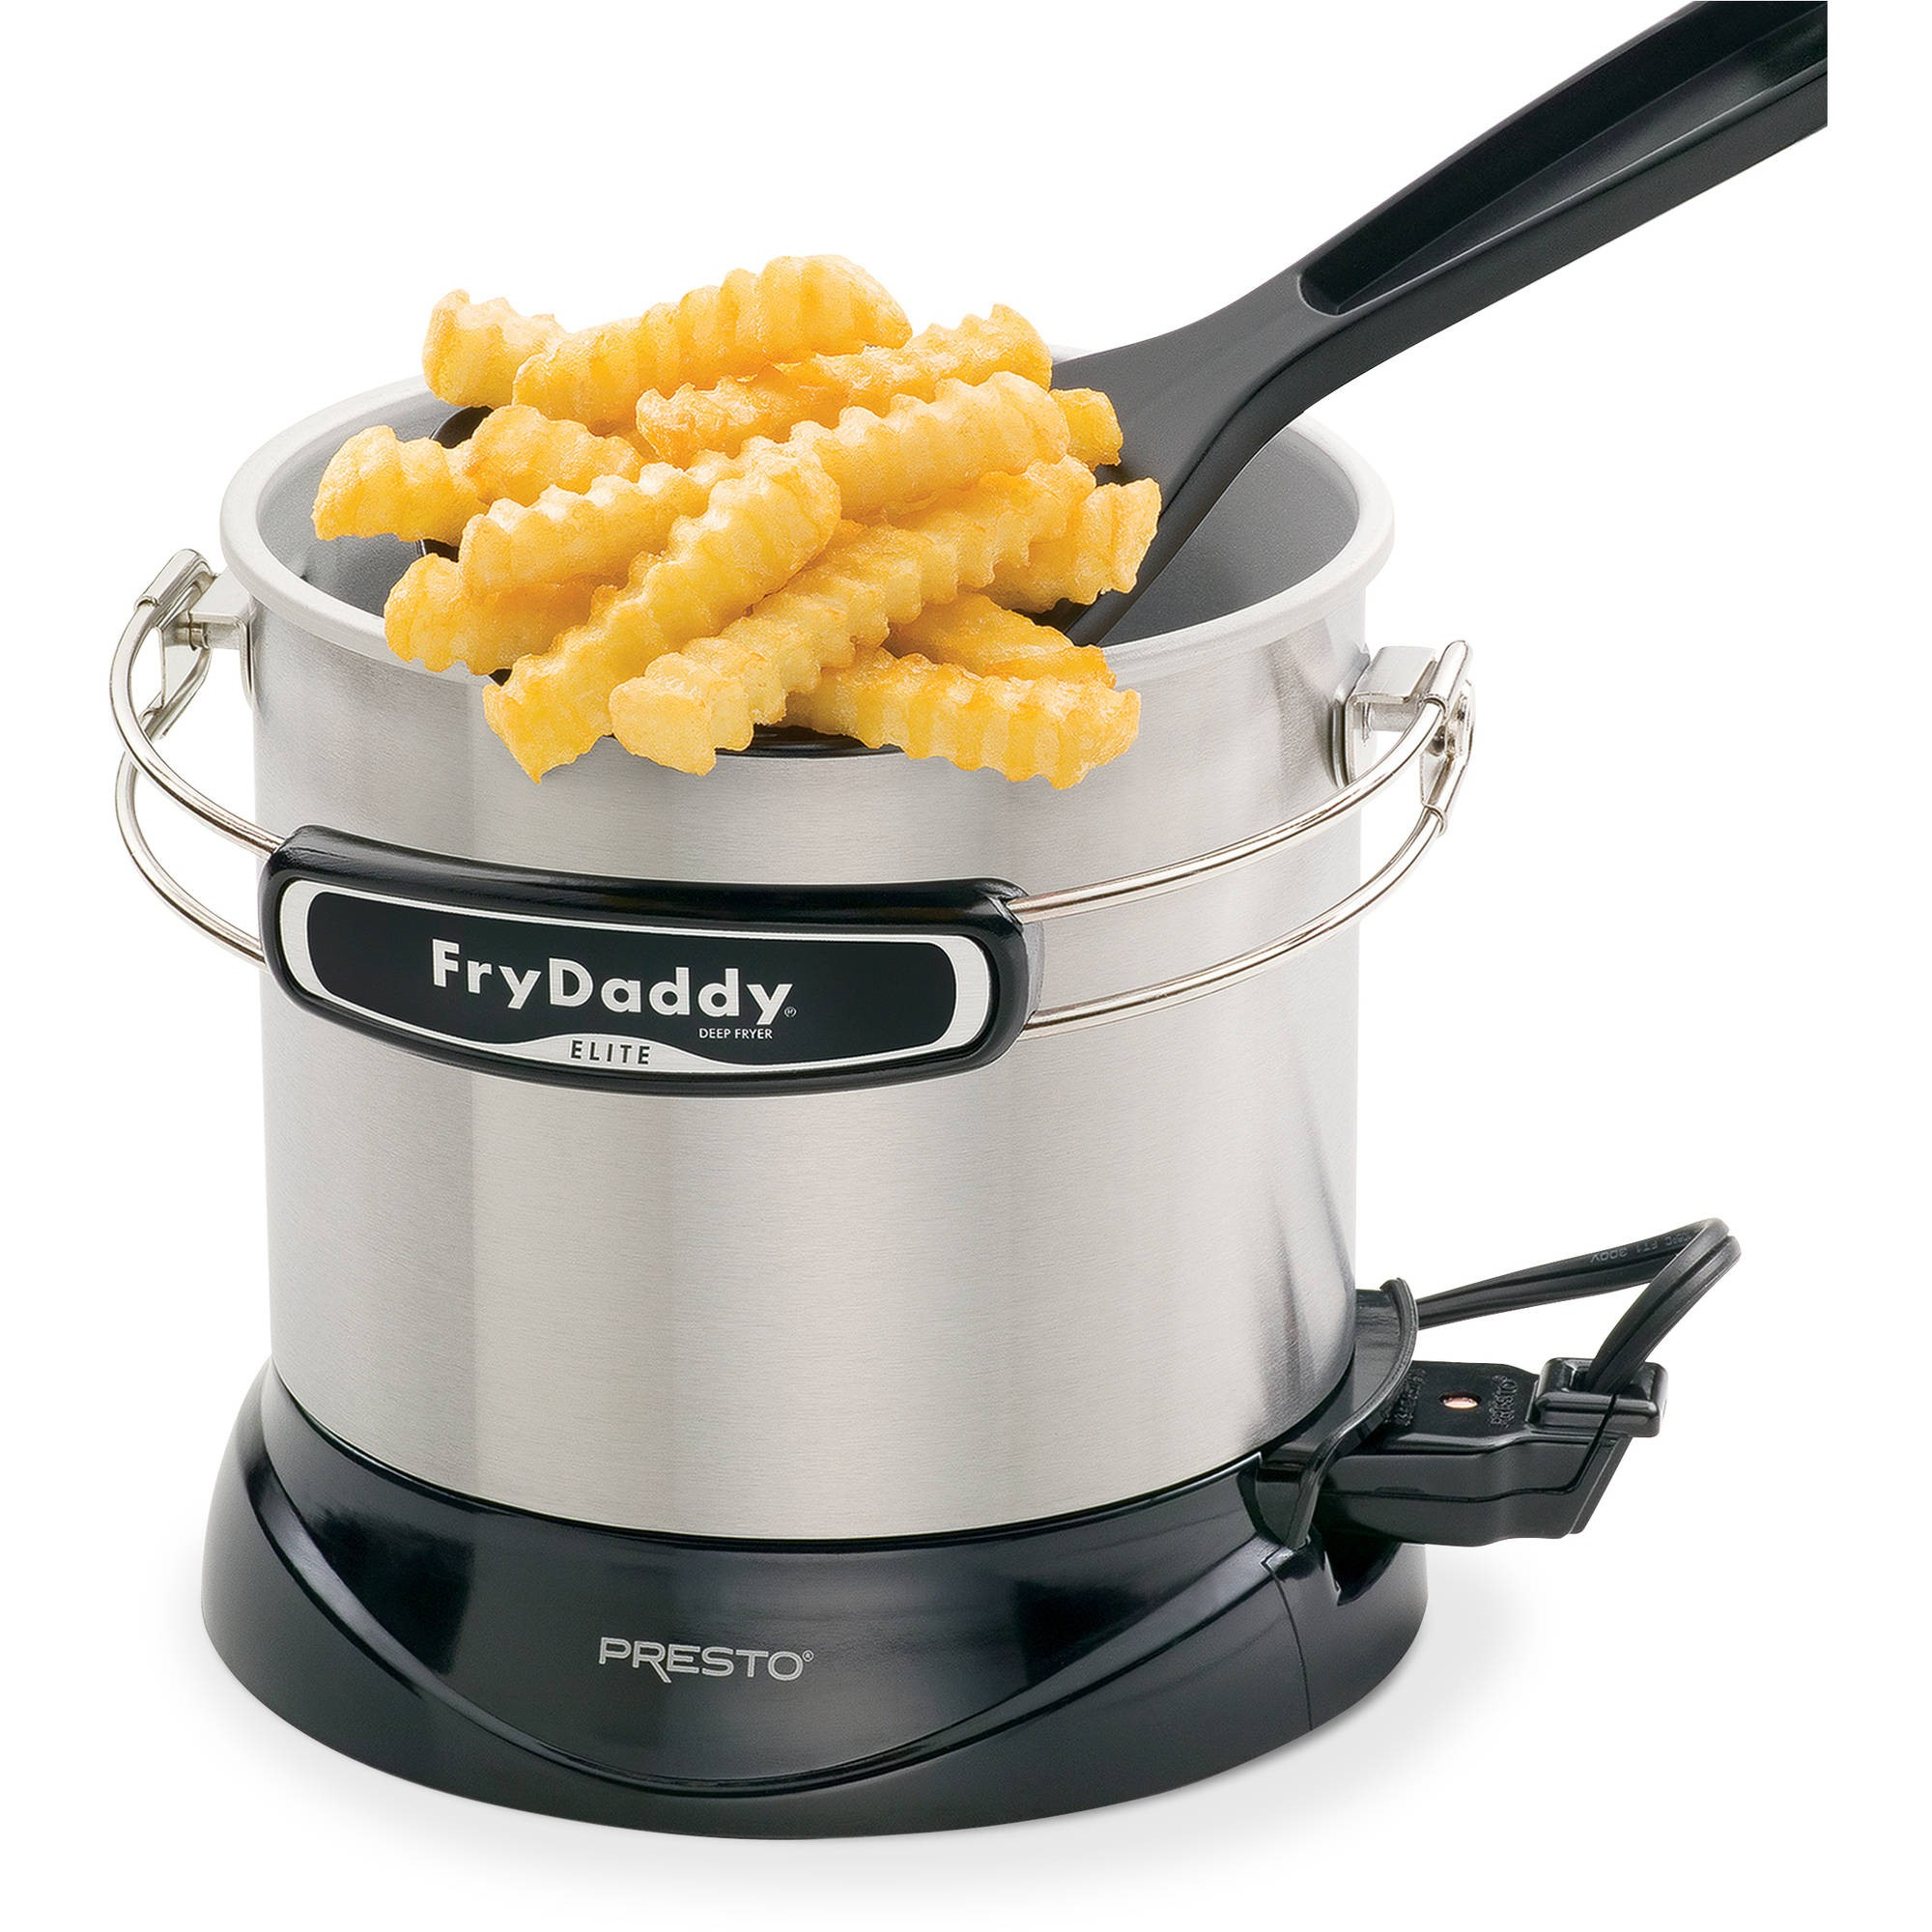 Presto FryDaddy® Elite electric deep fryer 05426